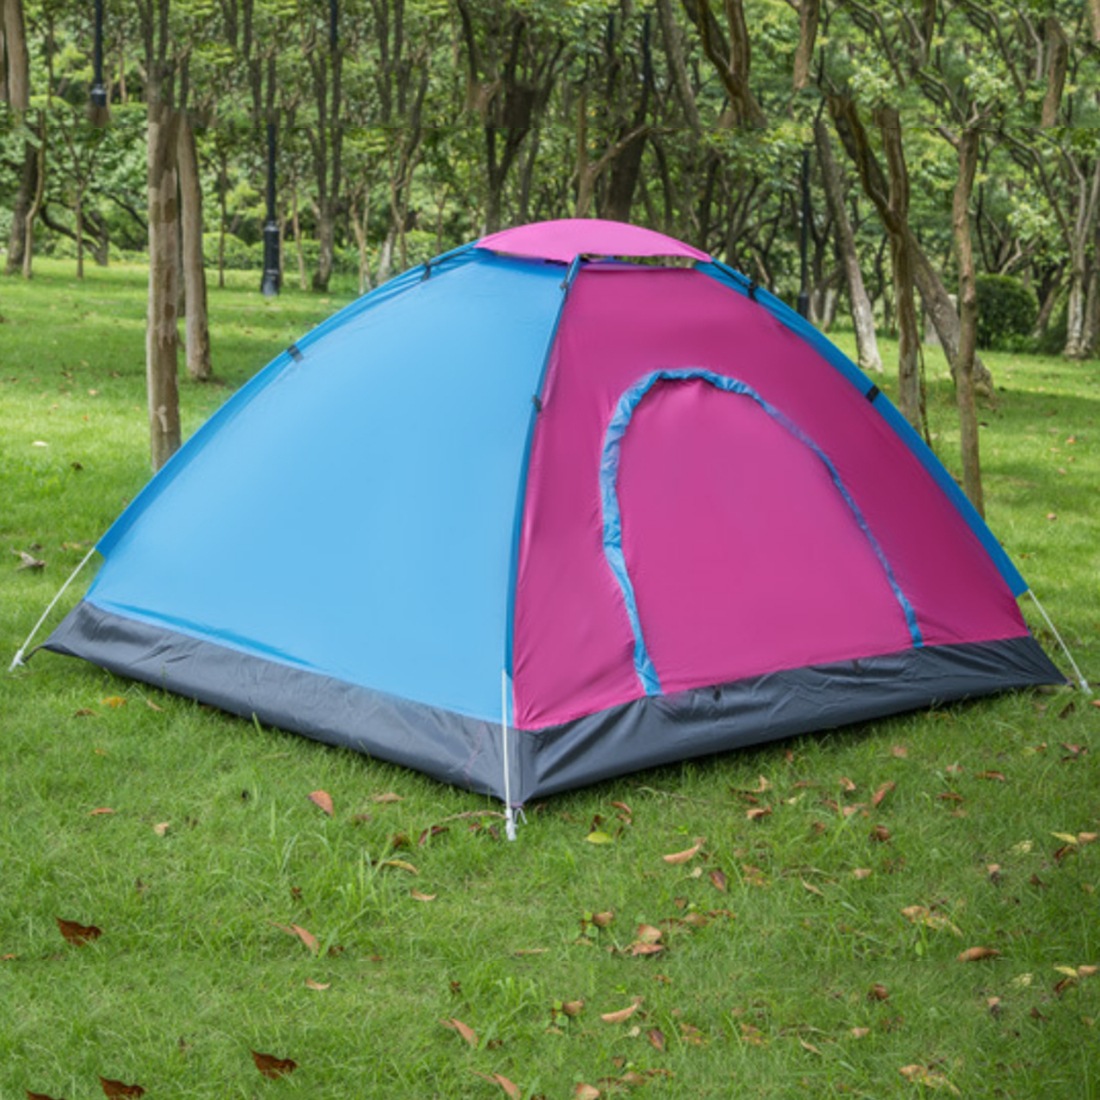 ФОТО Portable Automatic Outdoor Camping Hiking Tent 3-4 Person Beach Tent 200*200*130cm - Color Random